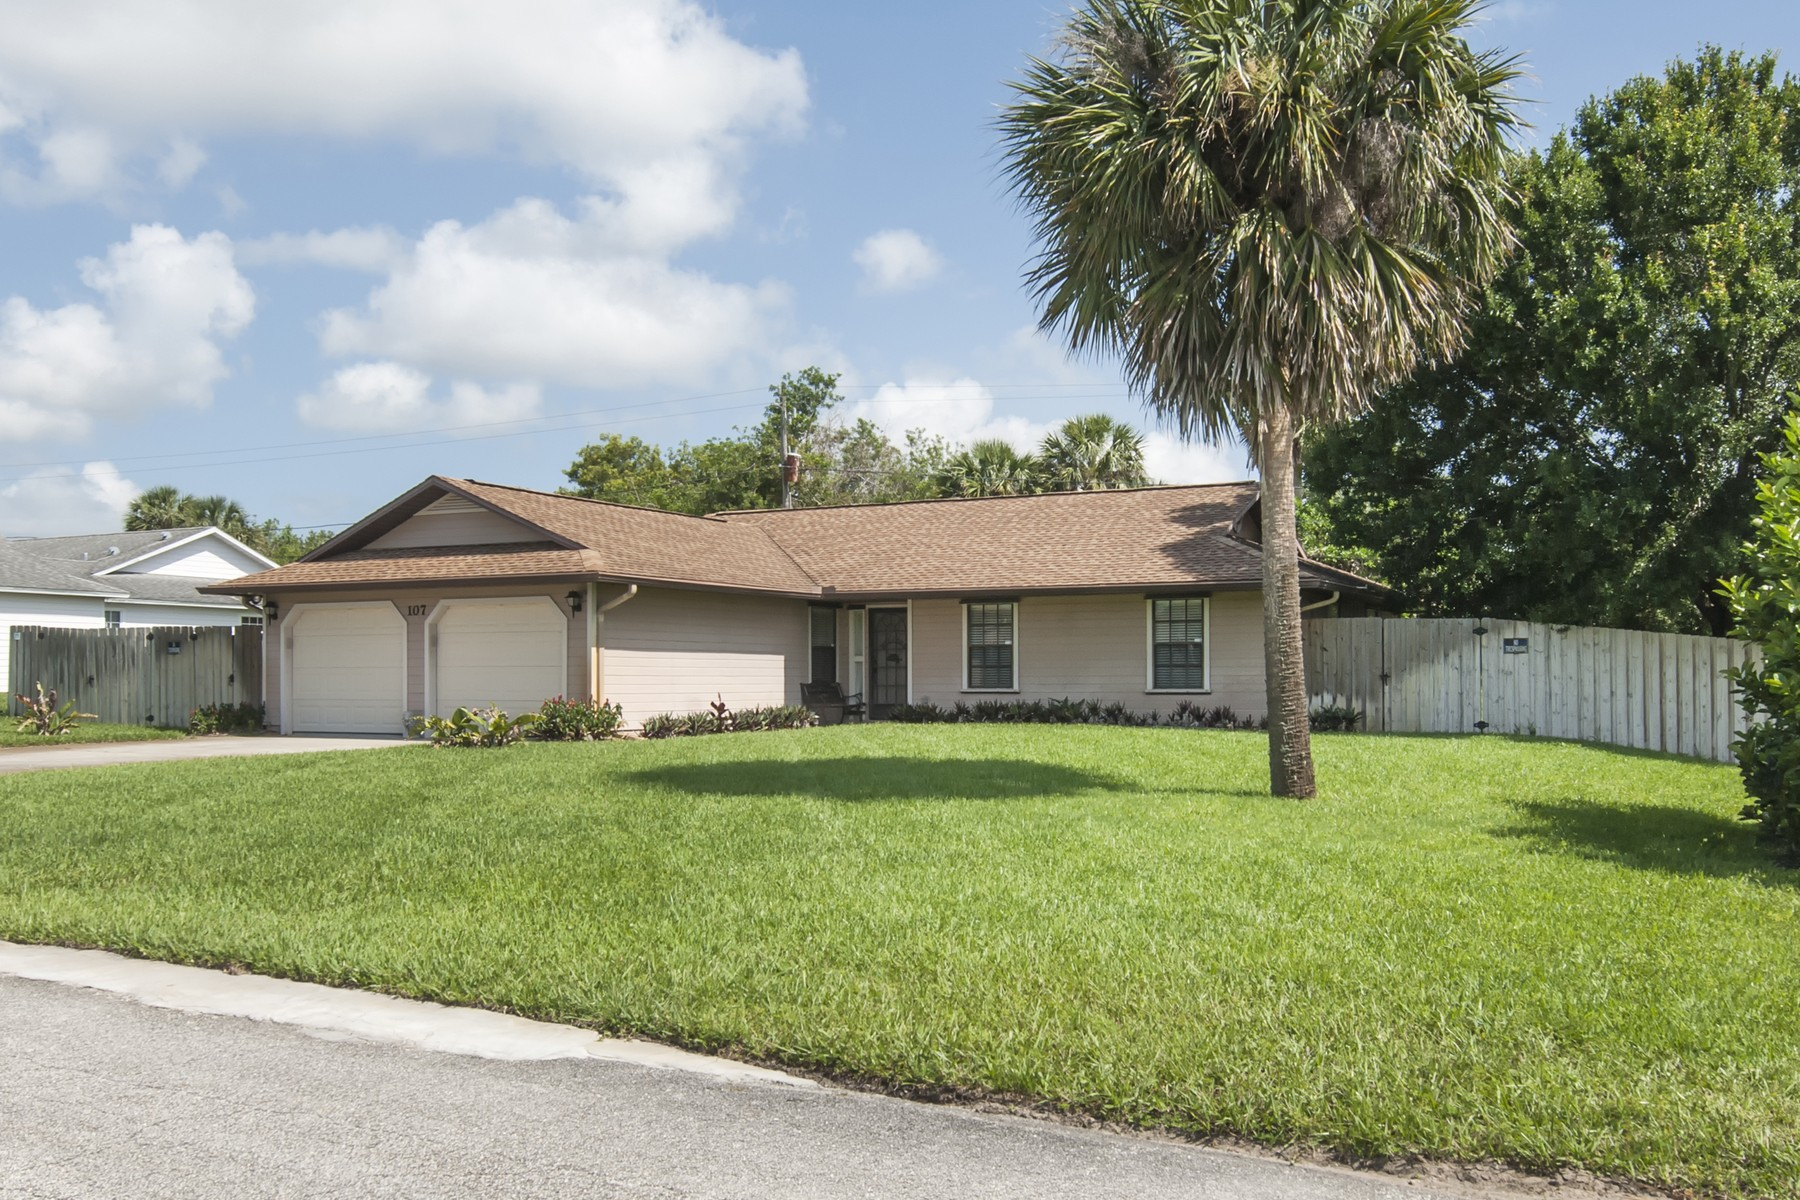 Single Family Home for Sale at Lovely Home on Oversized Lot Bordering on 104 Acre Reserve 107 N 19th Circle SW Vero Beach, Florida 32962 United States